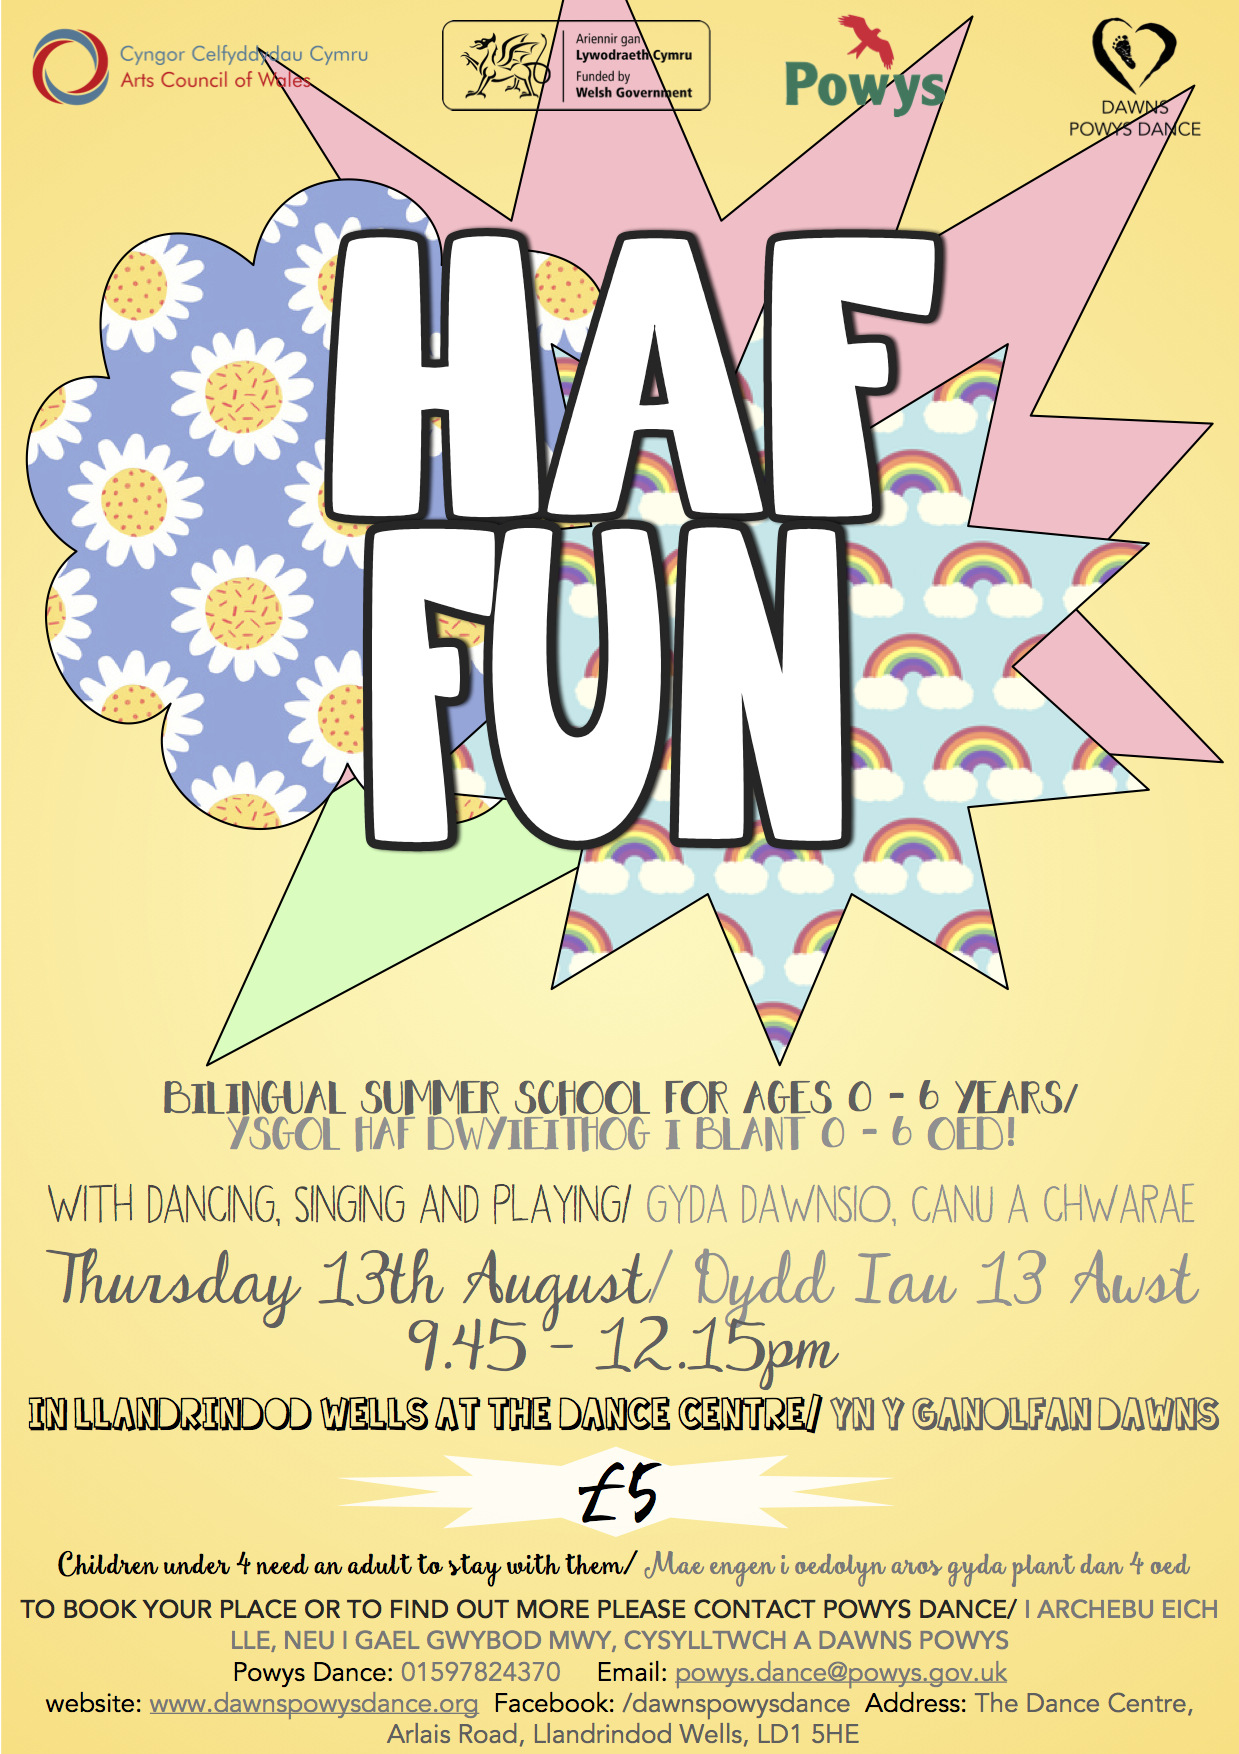 HAF FUN - THURSDAY